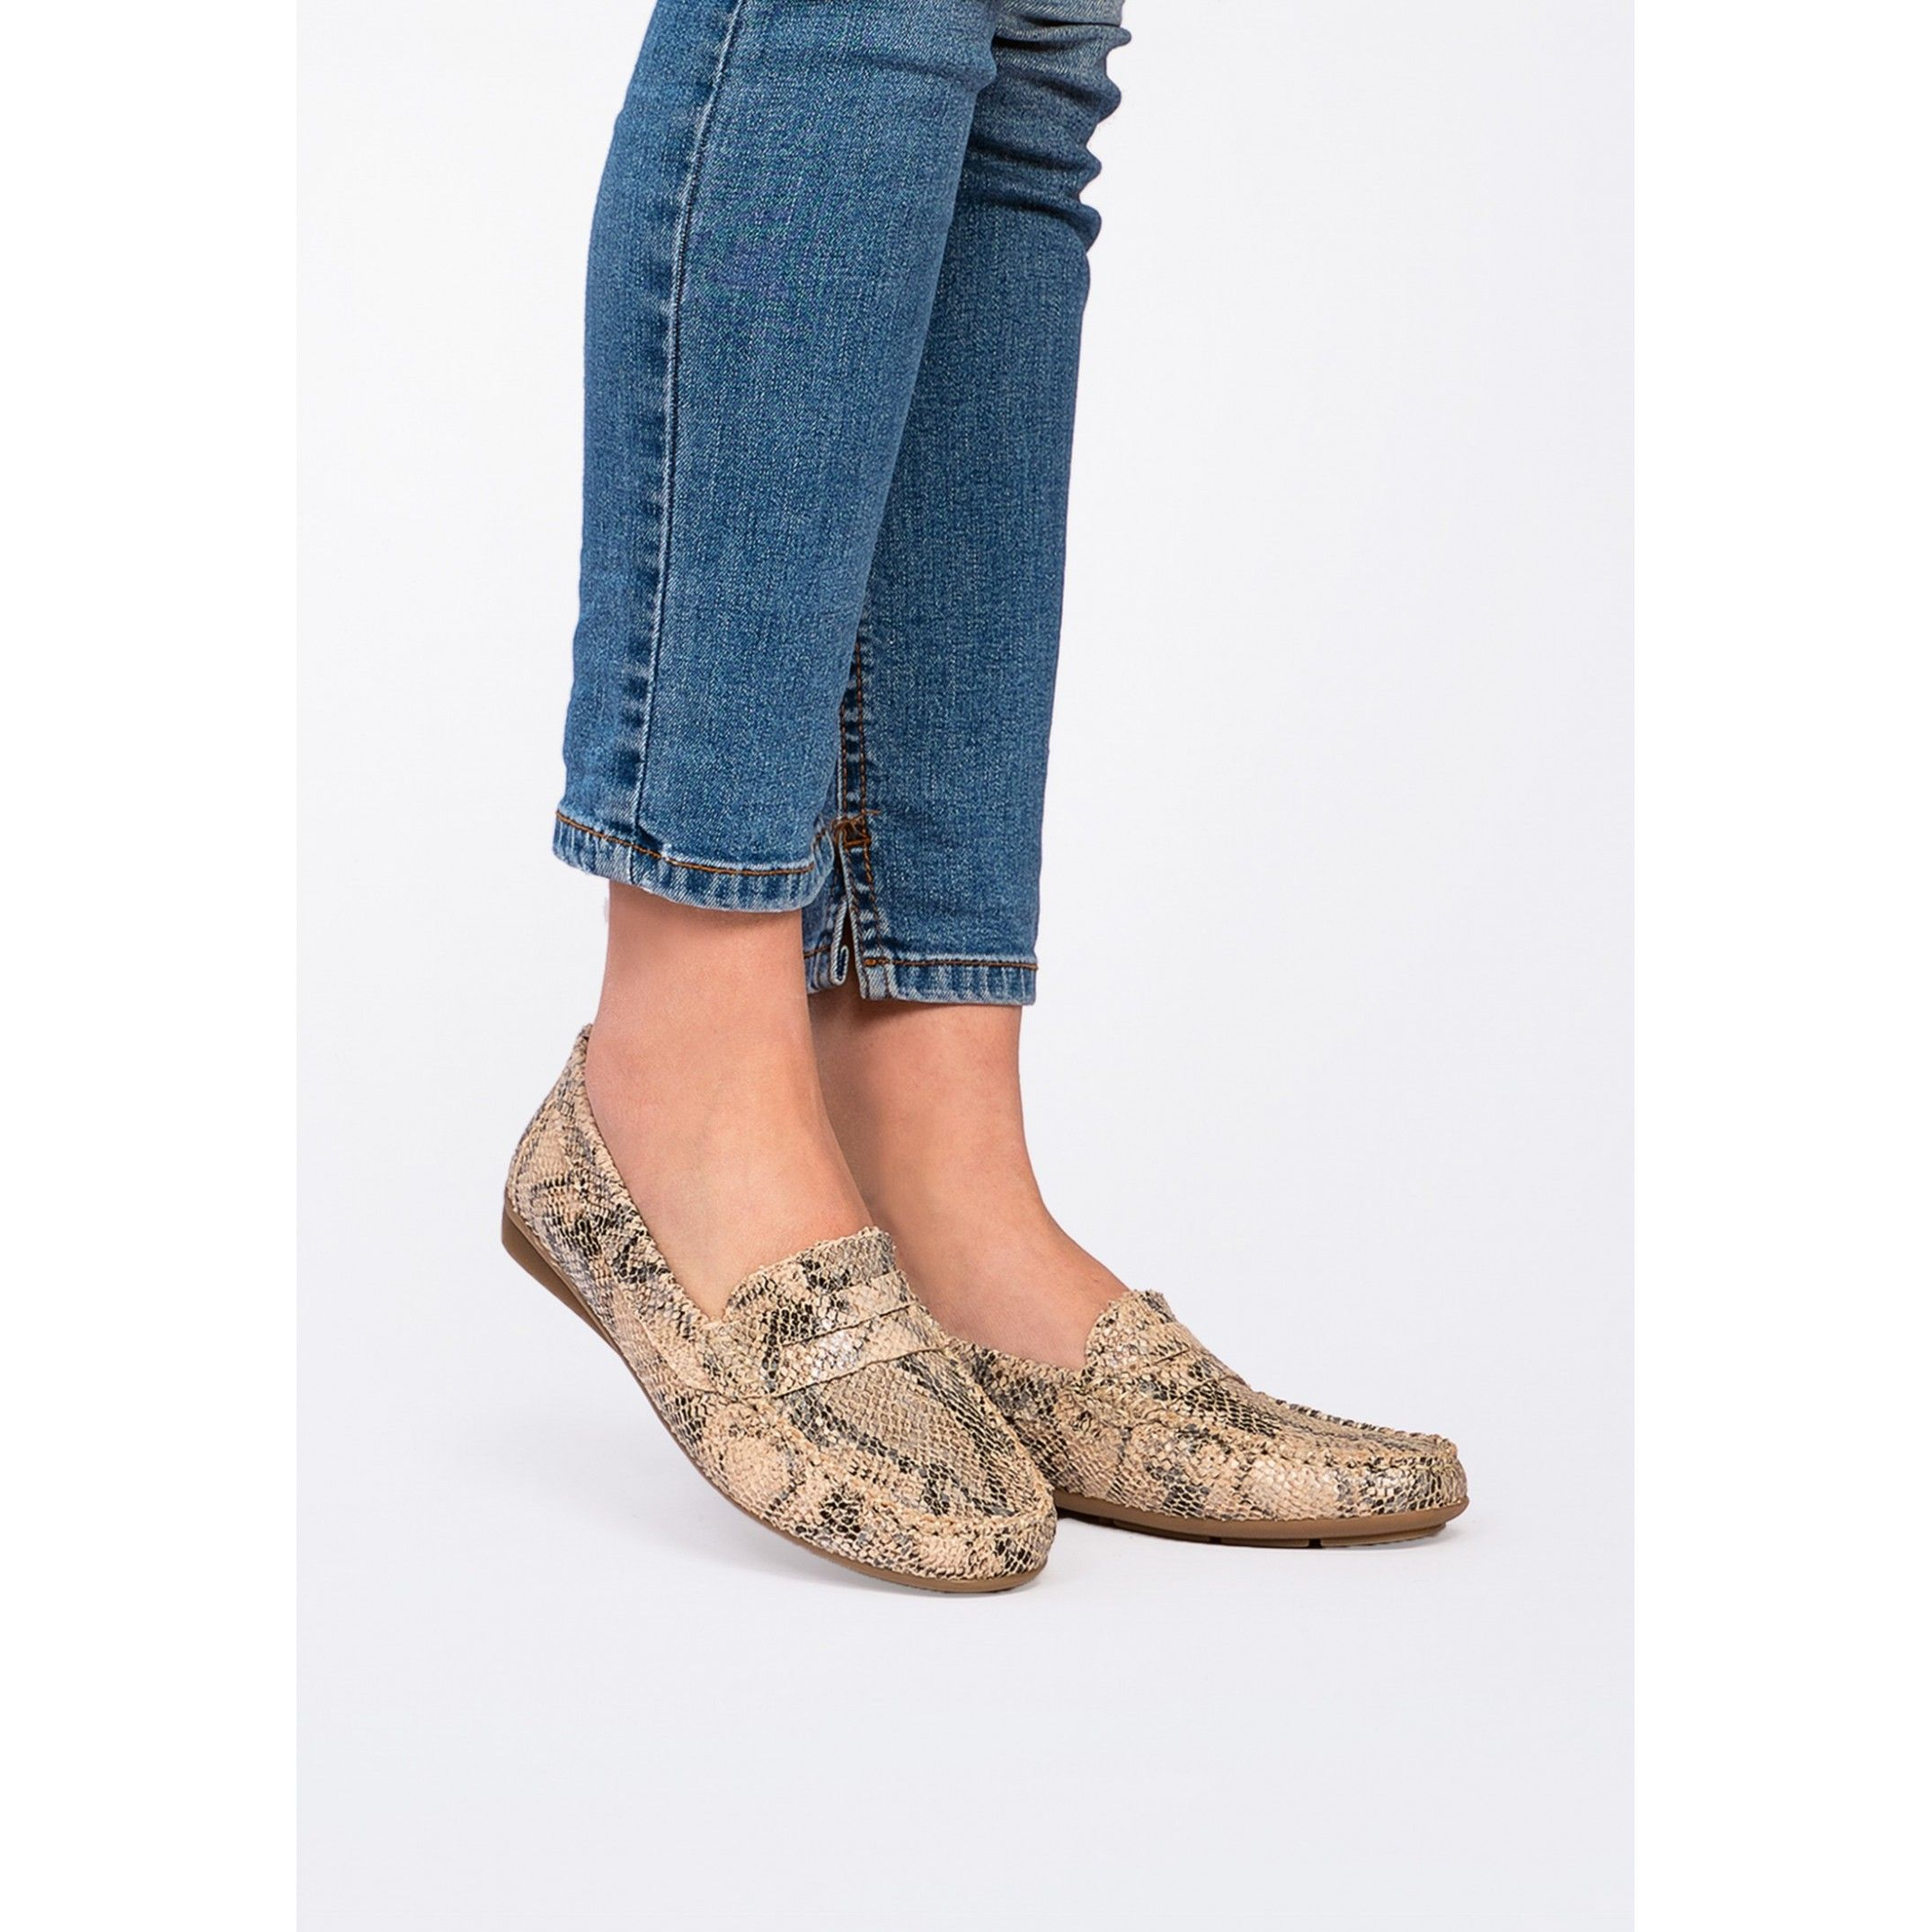 Women's Loafers in Animal